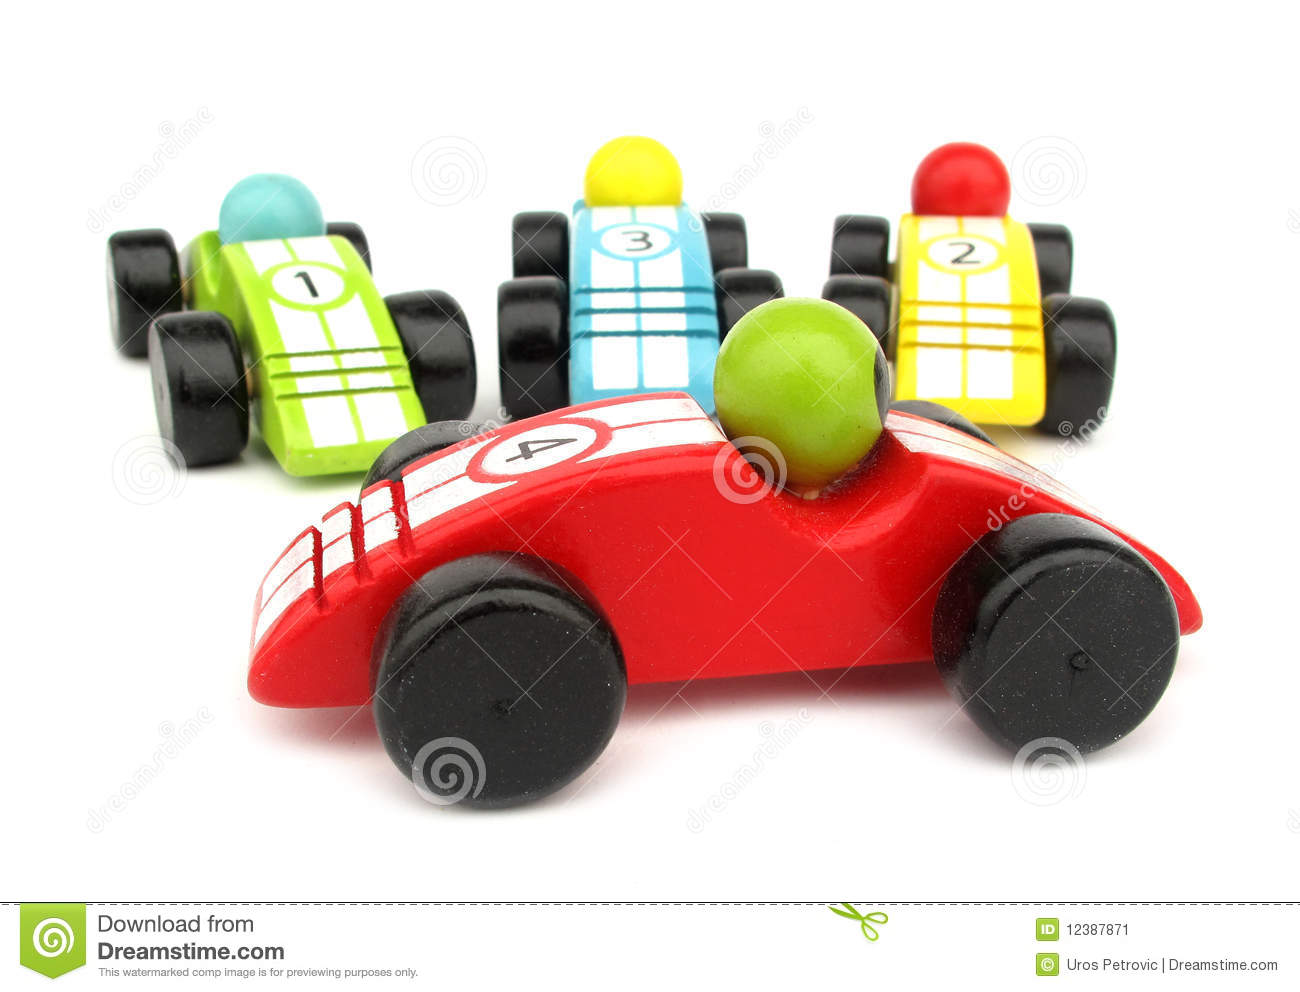 Wooden Race Car Plans | Free Download Image About All Car Type